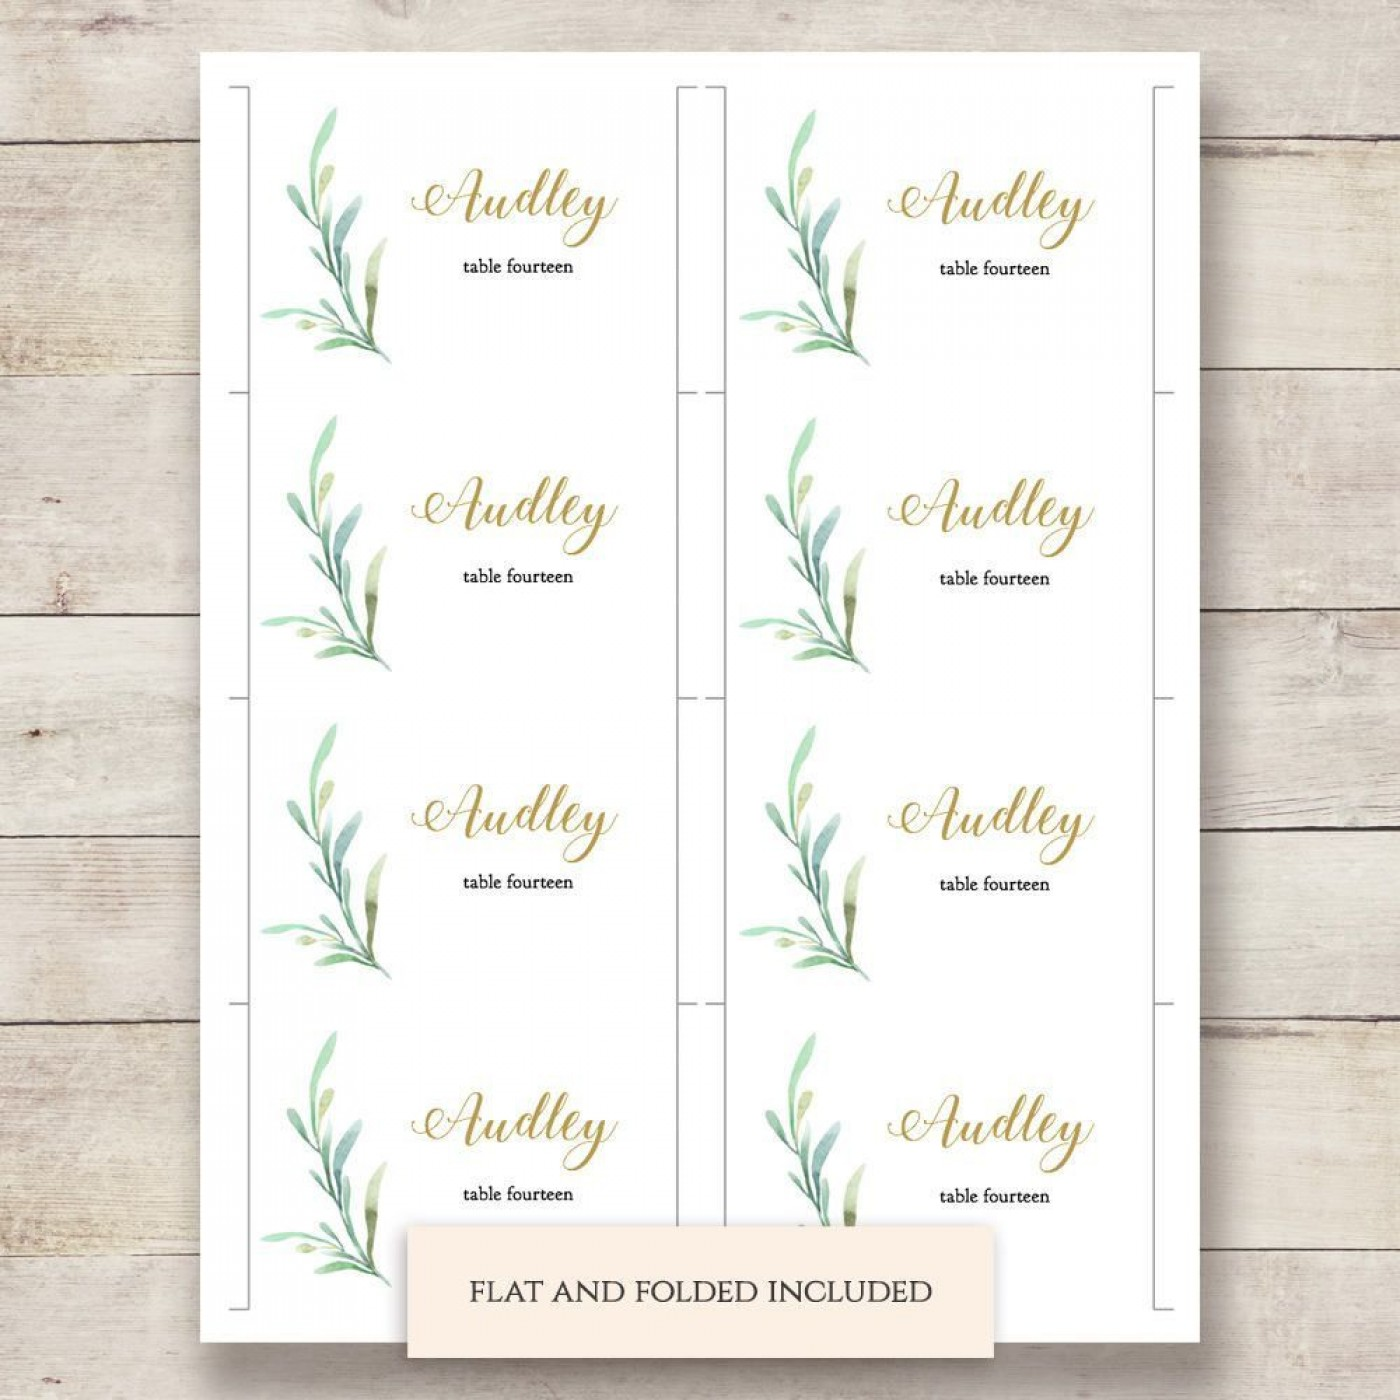 002 Outstanding Name Place Card Template High Resolution  Free Word Publisher Wedding1400